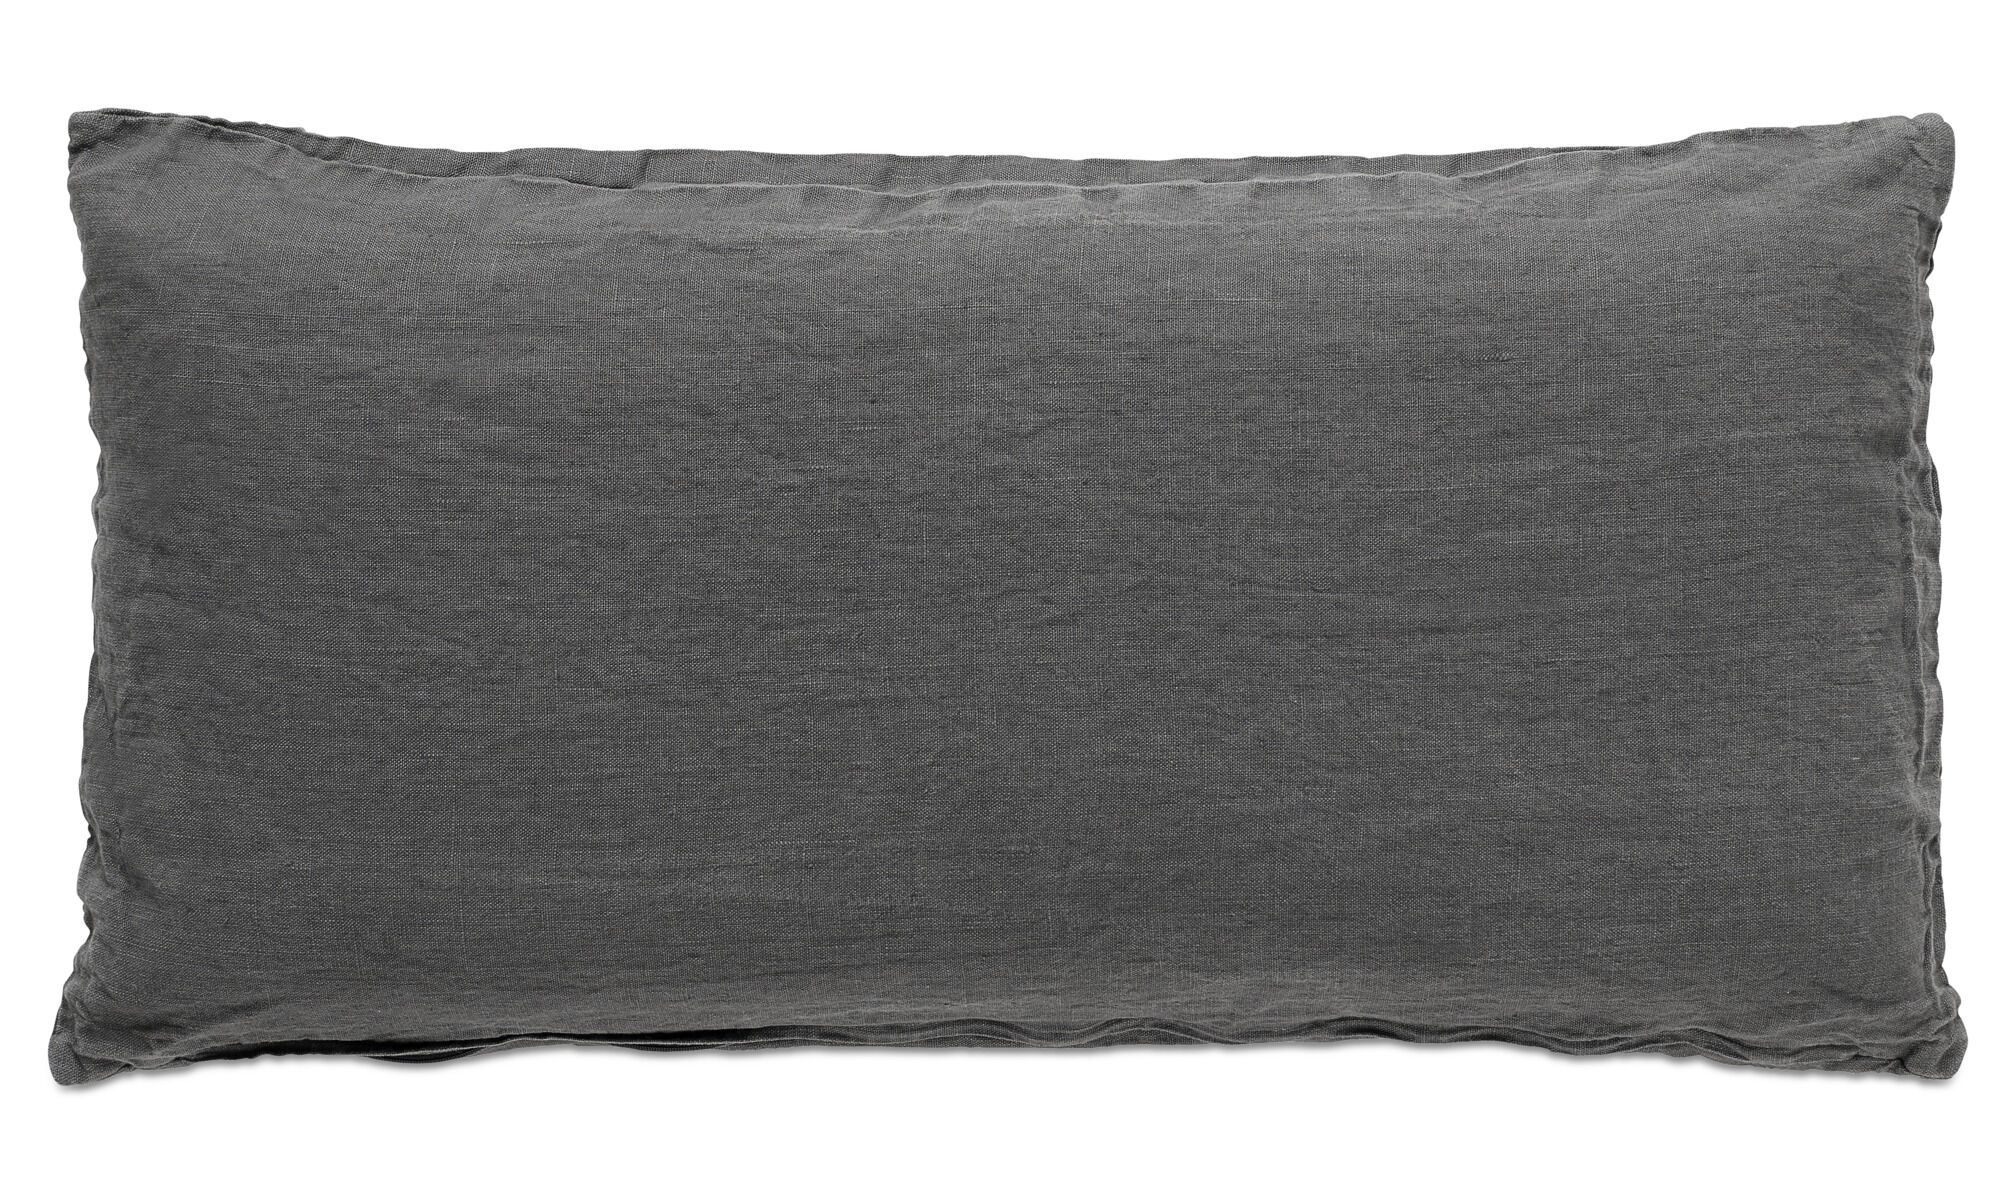 Sofa Quilting Fabric Cushions From Boconcept Add The Personal Touch With Cushions